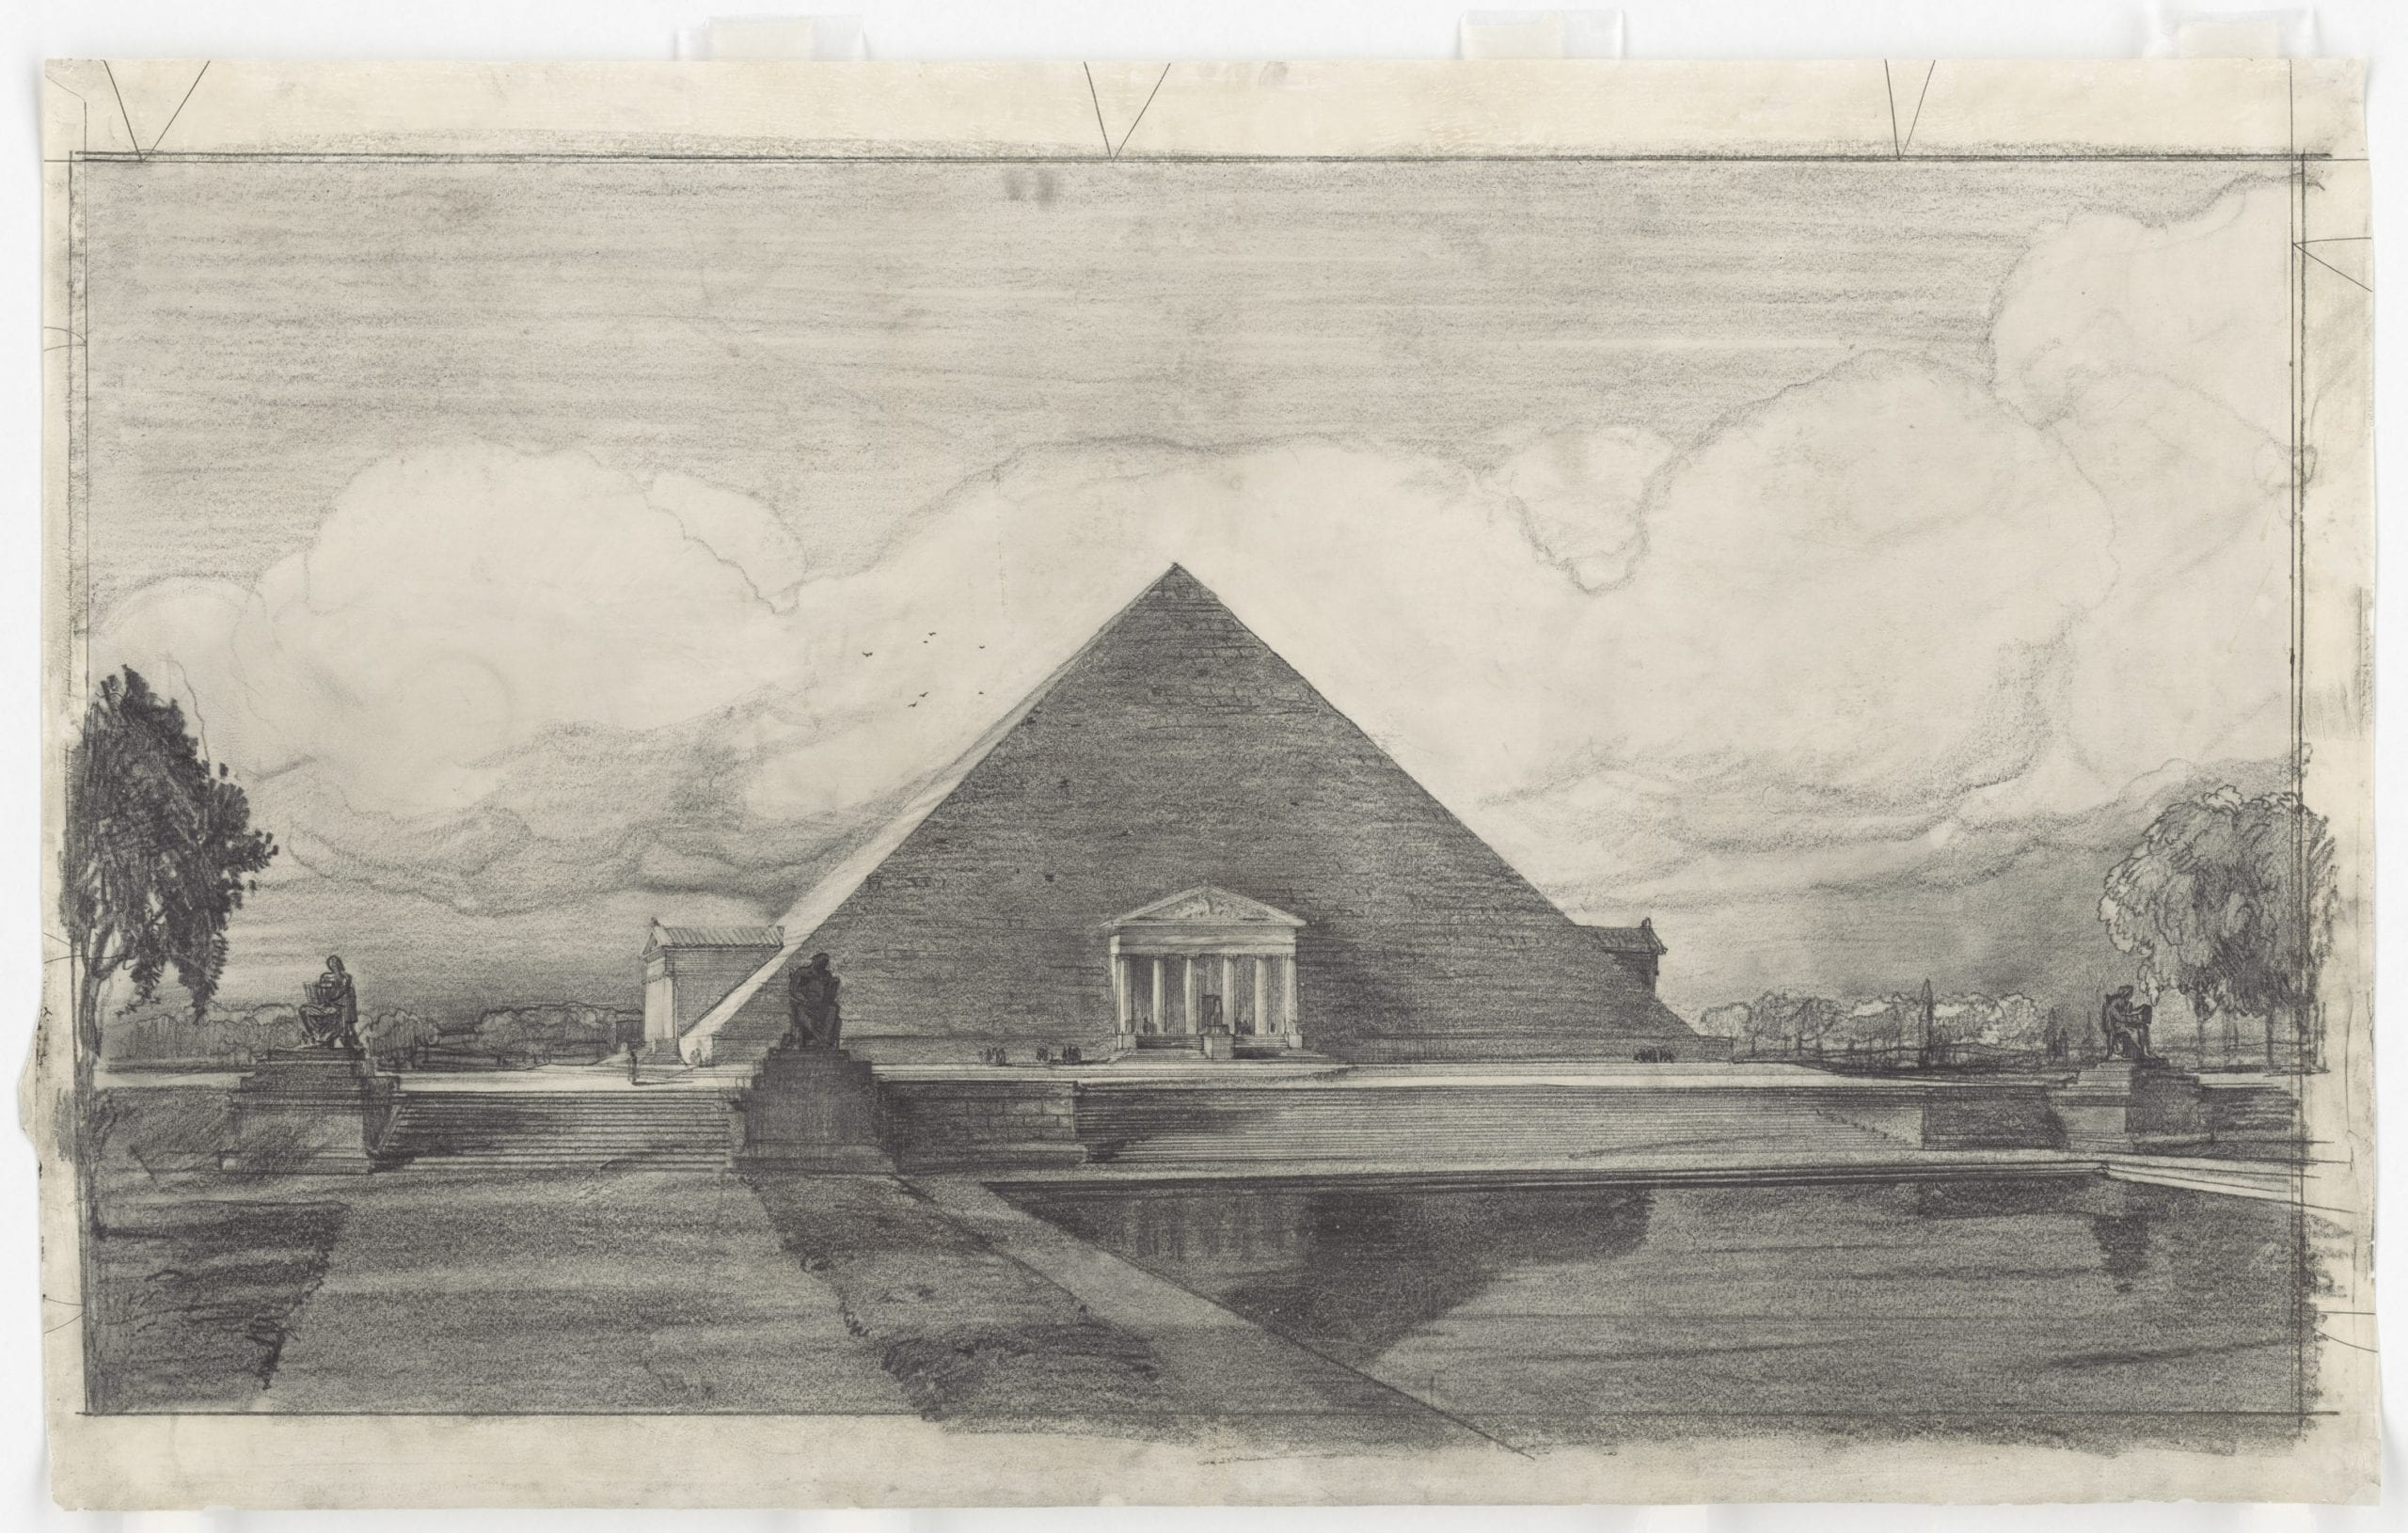 John Russell Pope's Competition Proposal for a Pyramid with Porticoes Style Monument to Abraham Lincoln, 1912